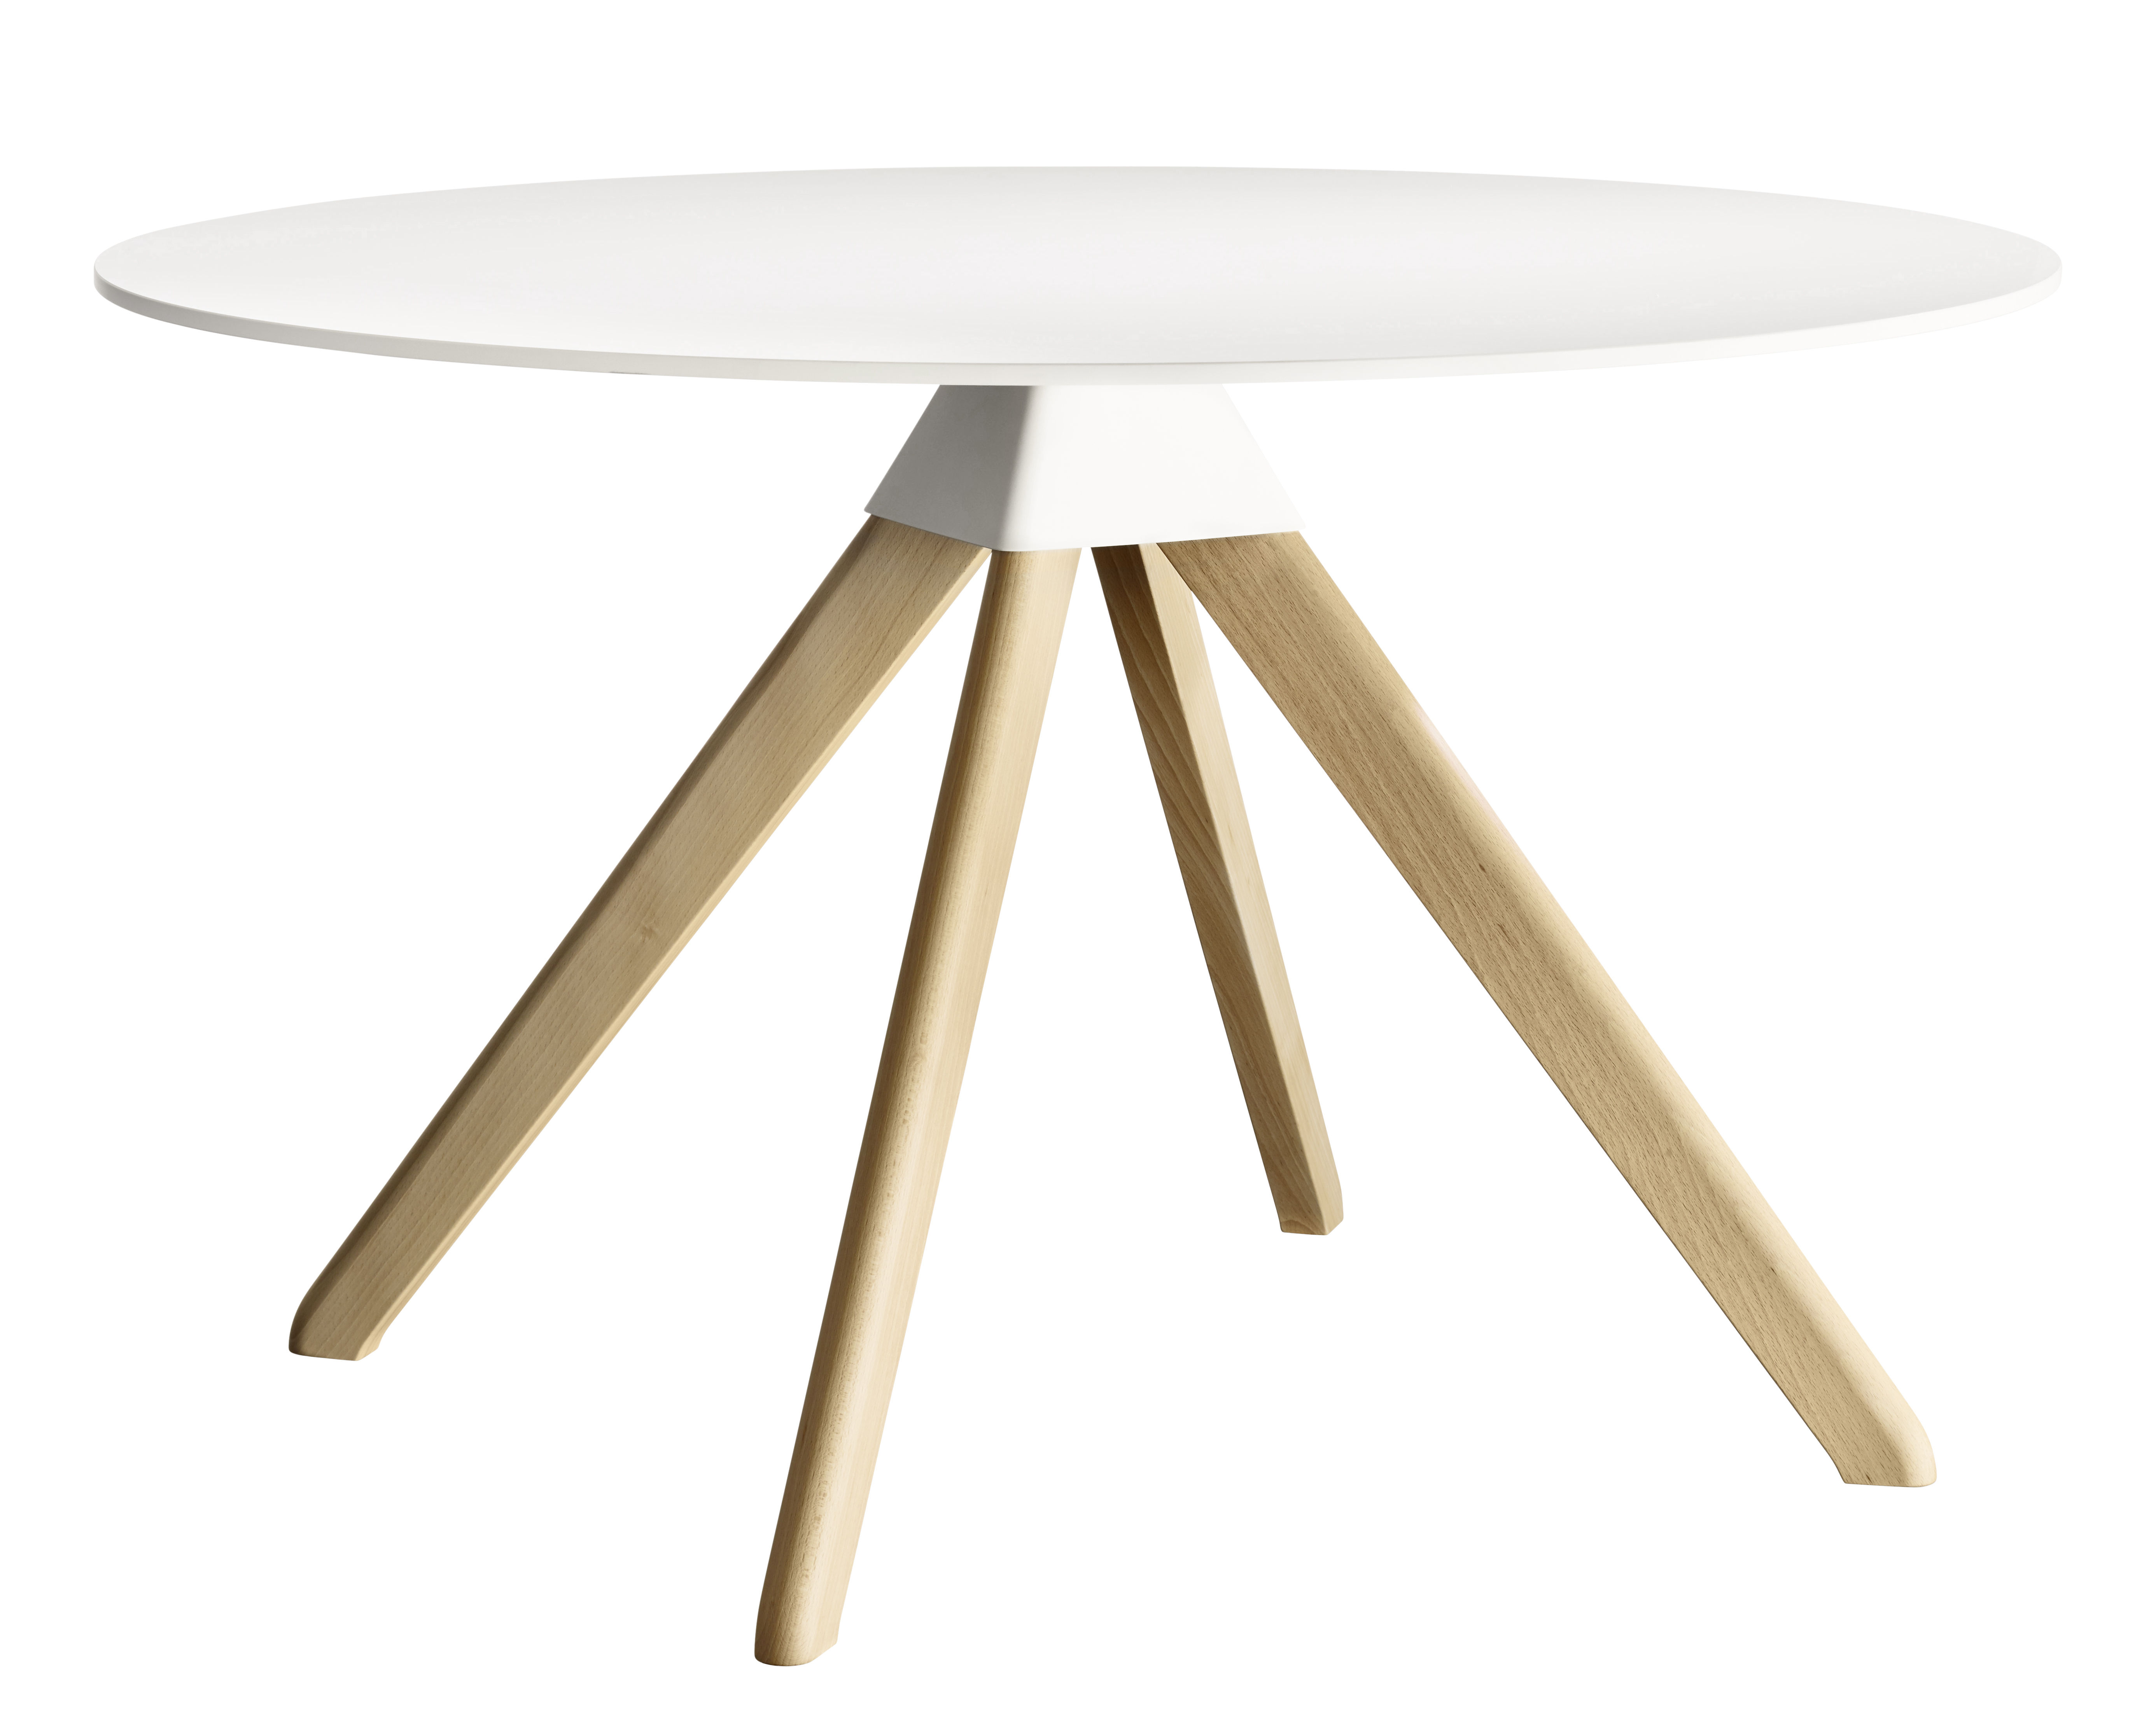 Product selections - Modern nature - Cuckoo - The Wild Bunch Round table - Ø 120 cm by Magis - White / Natural wood feet - Beechwood, MDF, Polypropylene